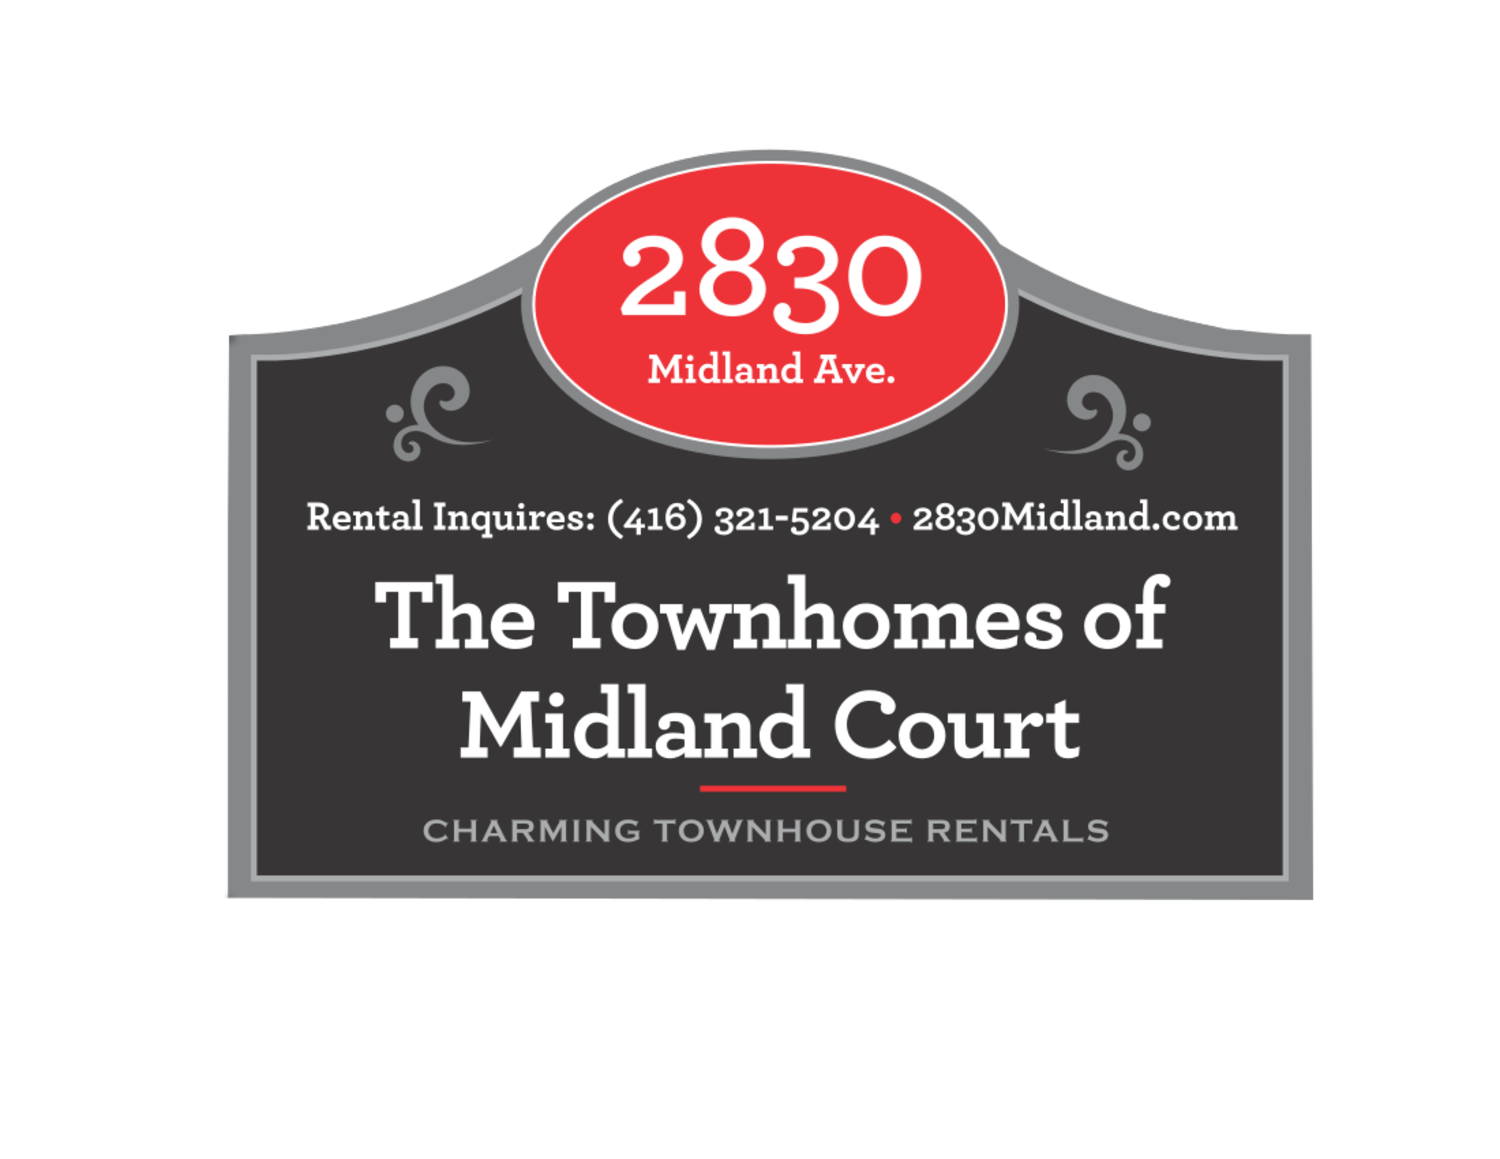 Townhomes of Midland Court